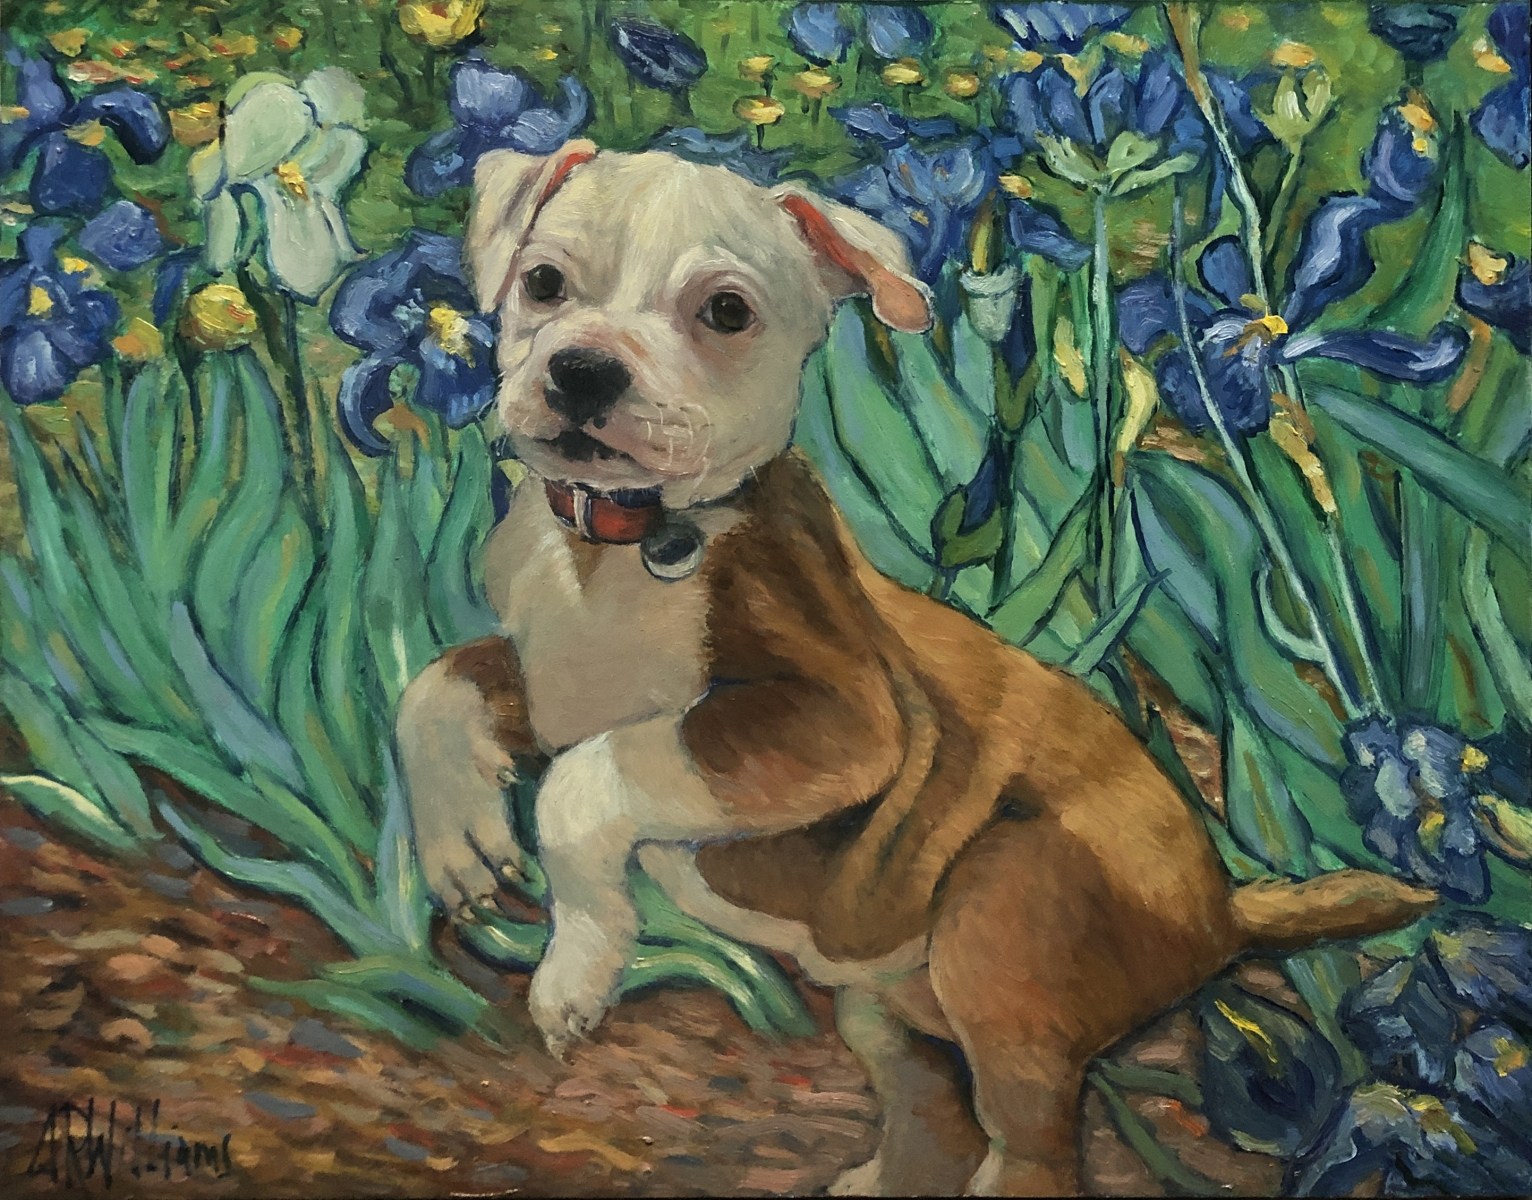 2020 Scarlet with Van Gogh's Irises 16x12 oil on panel